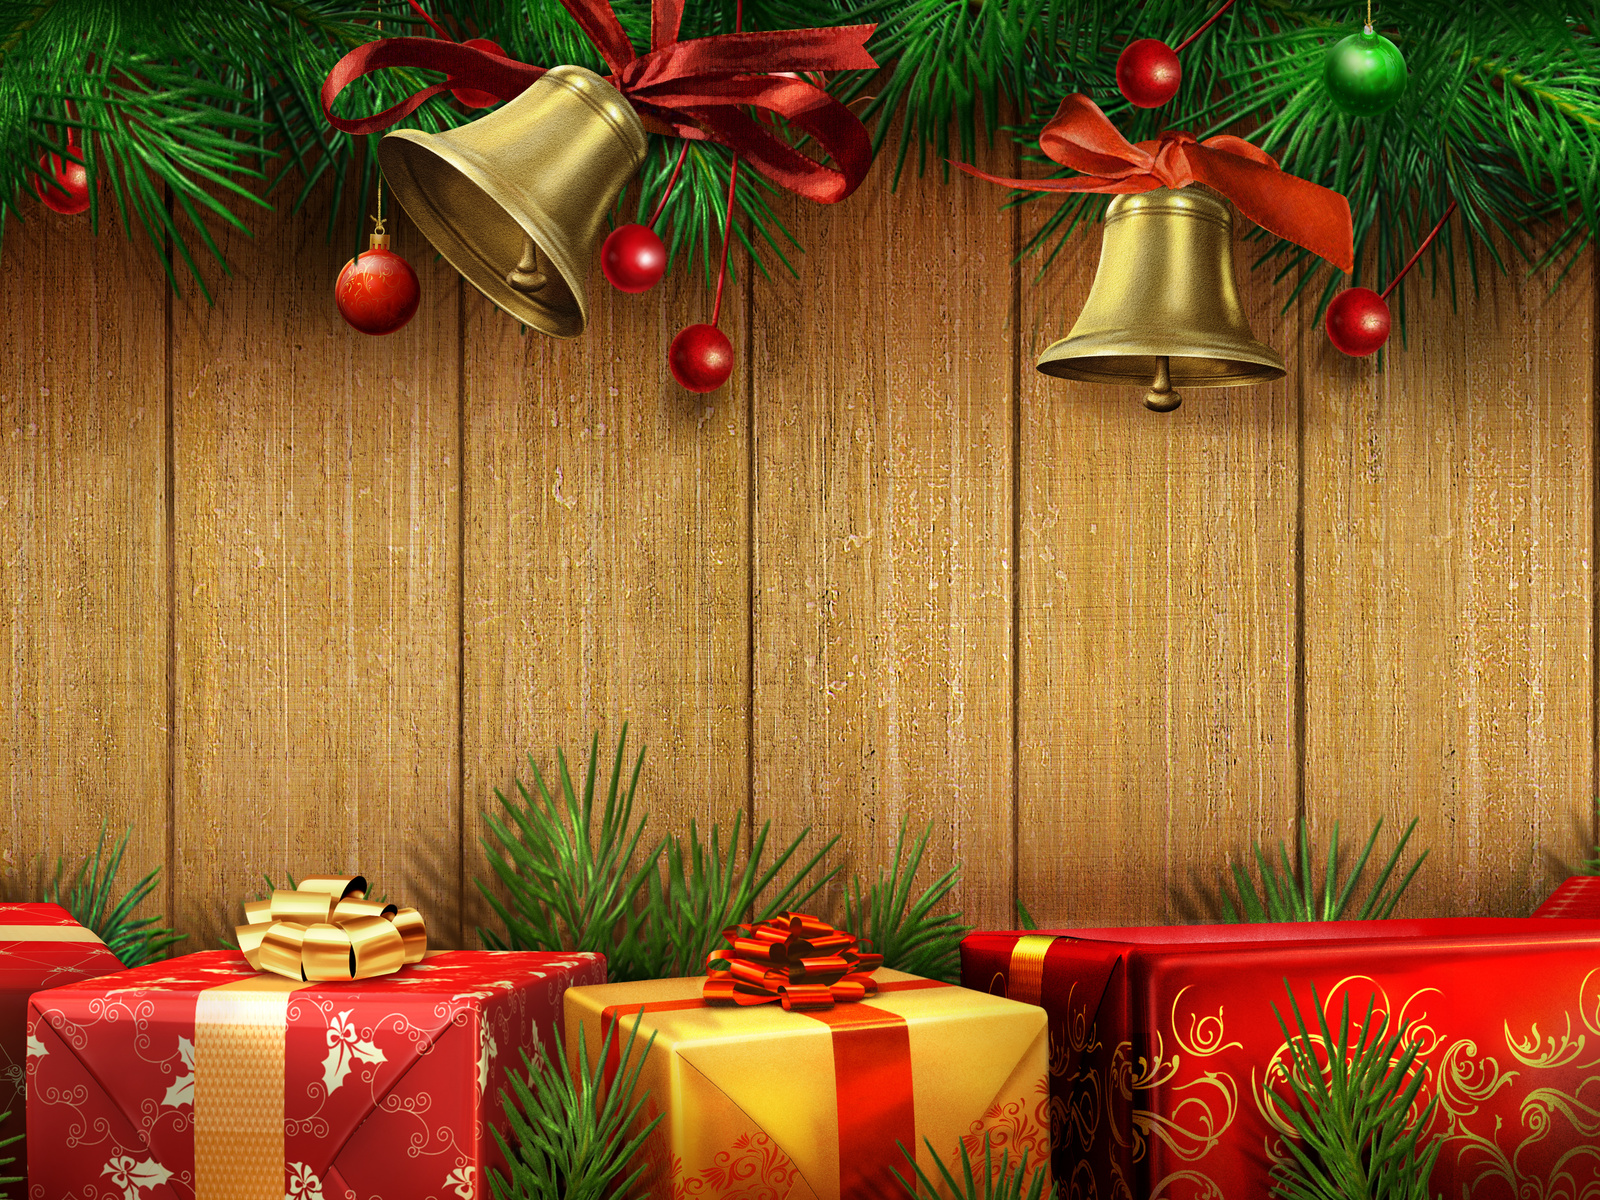 Gifts and bells